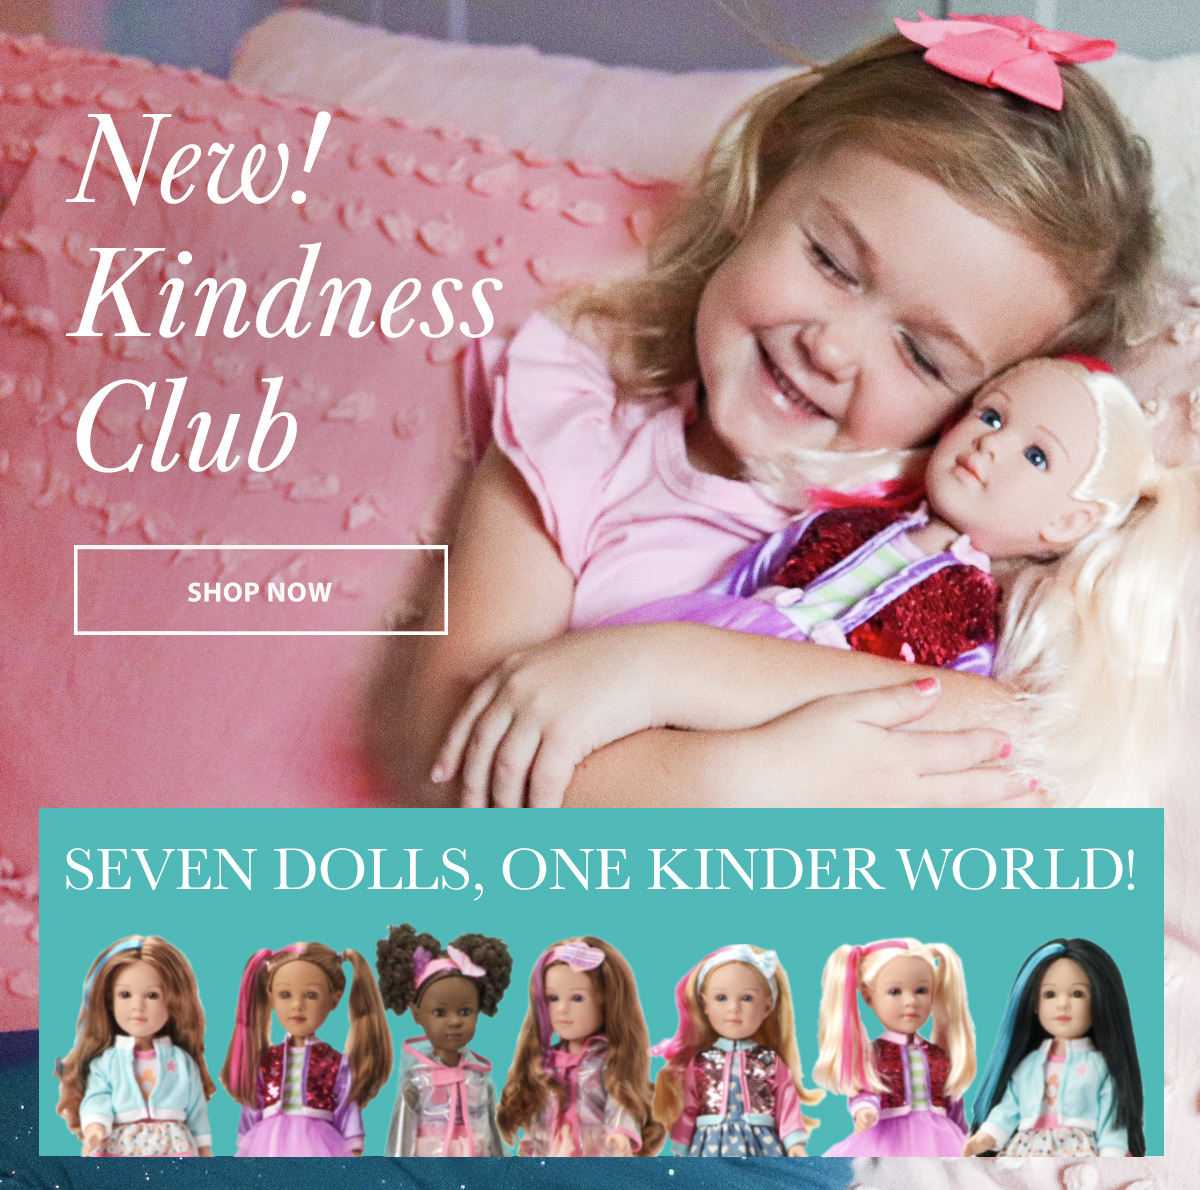 Click to shop for Kindness Club dolls